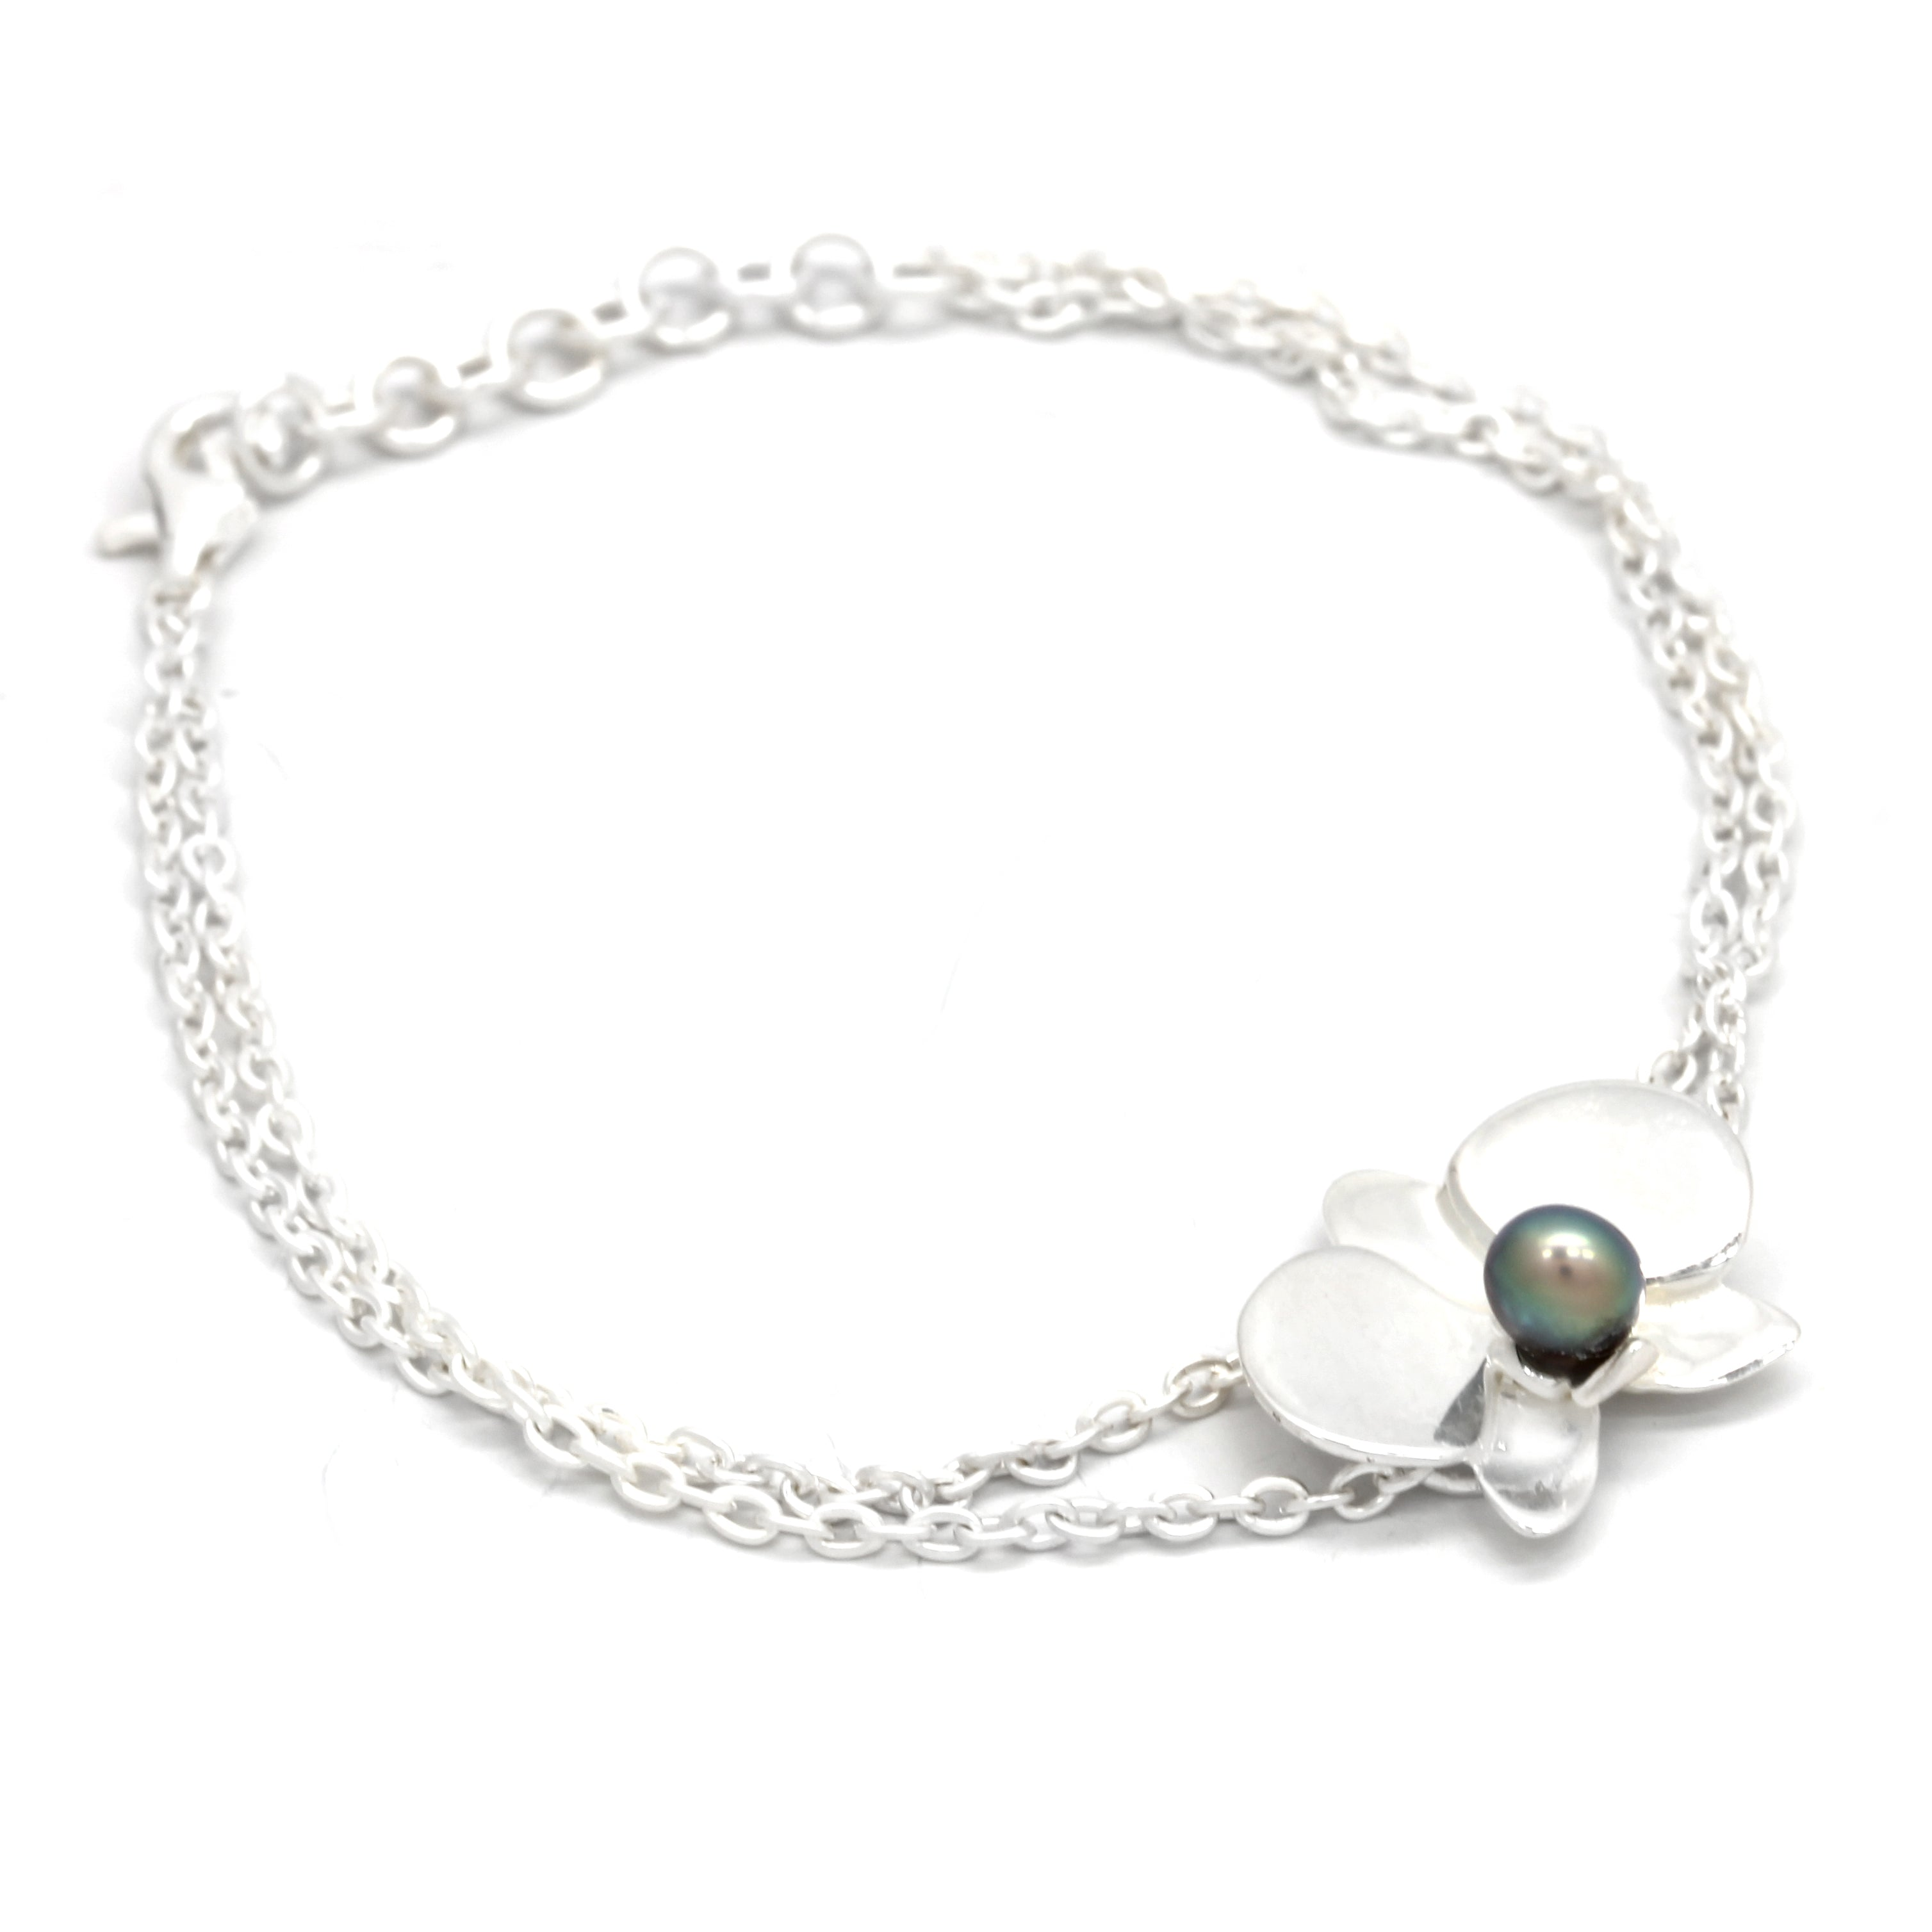 ORCHID: Silver Bracelet with Keshi Cortez Pearls